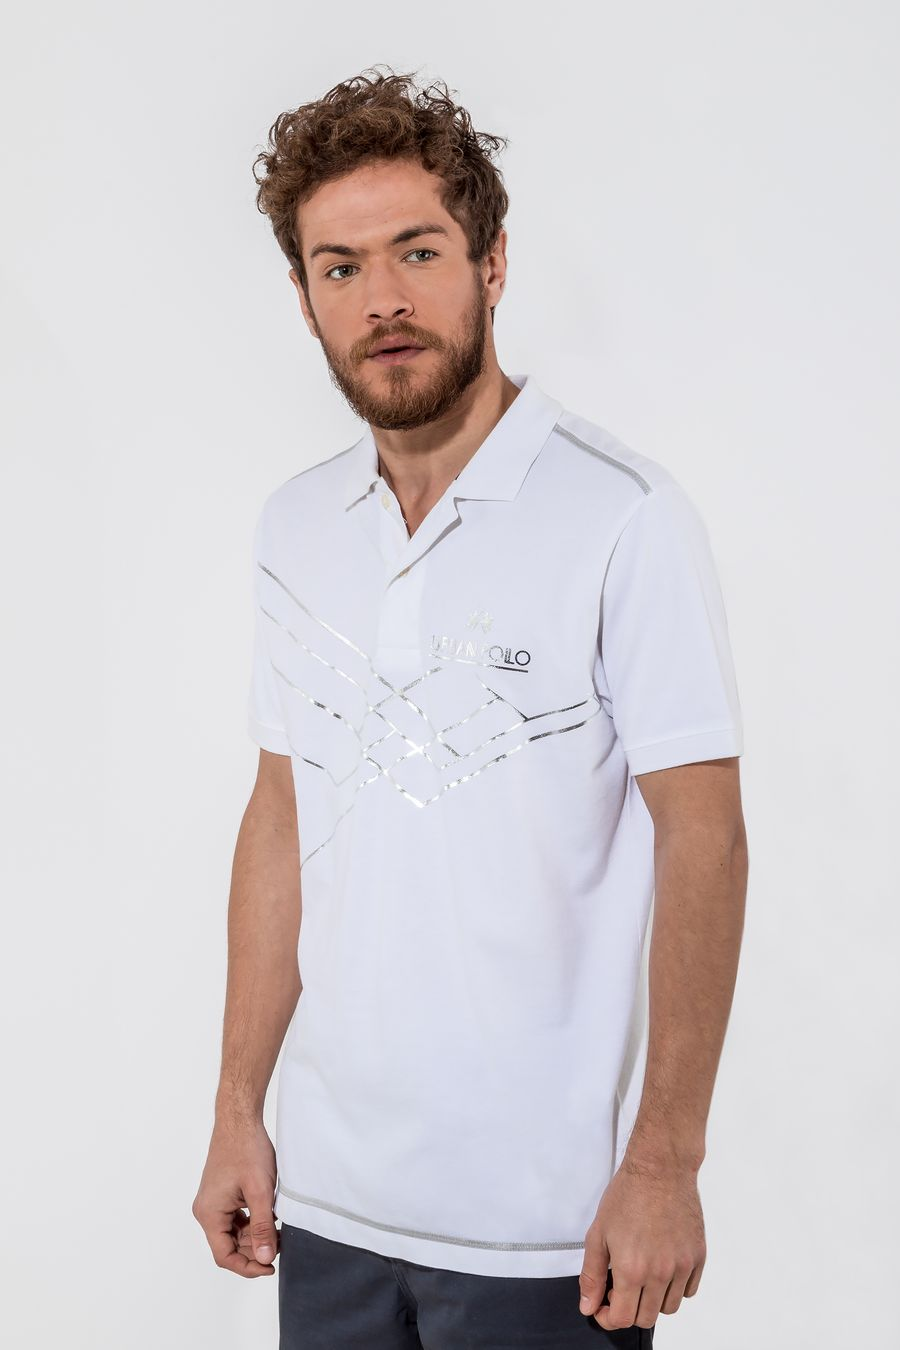 POLO-SEMIEQ-MC-URBAN-POLO-LMP-028-OPTIC-WHITE